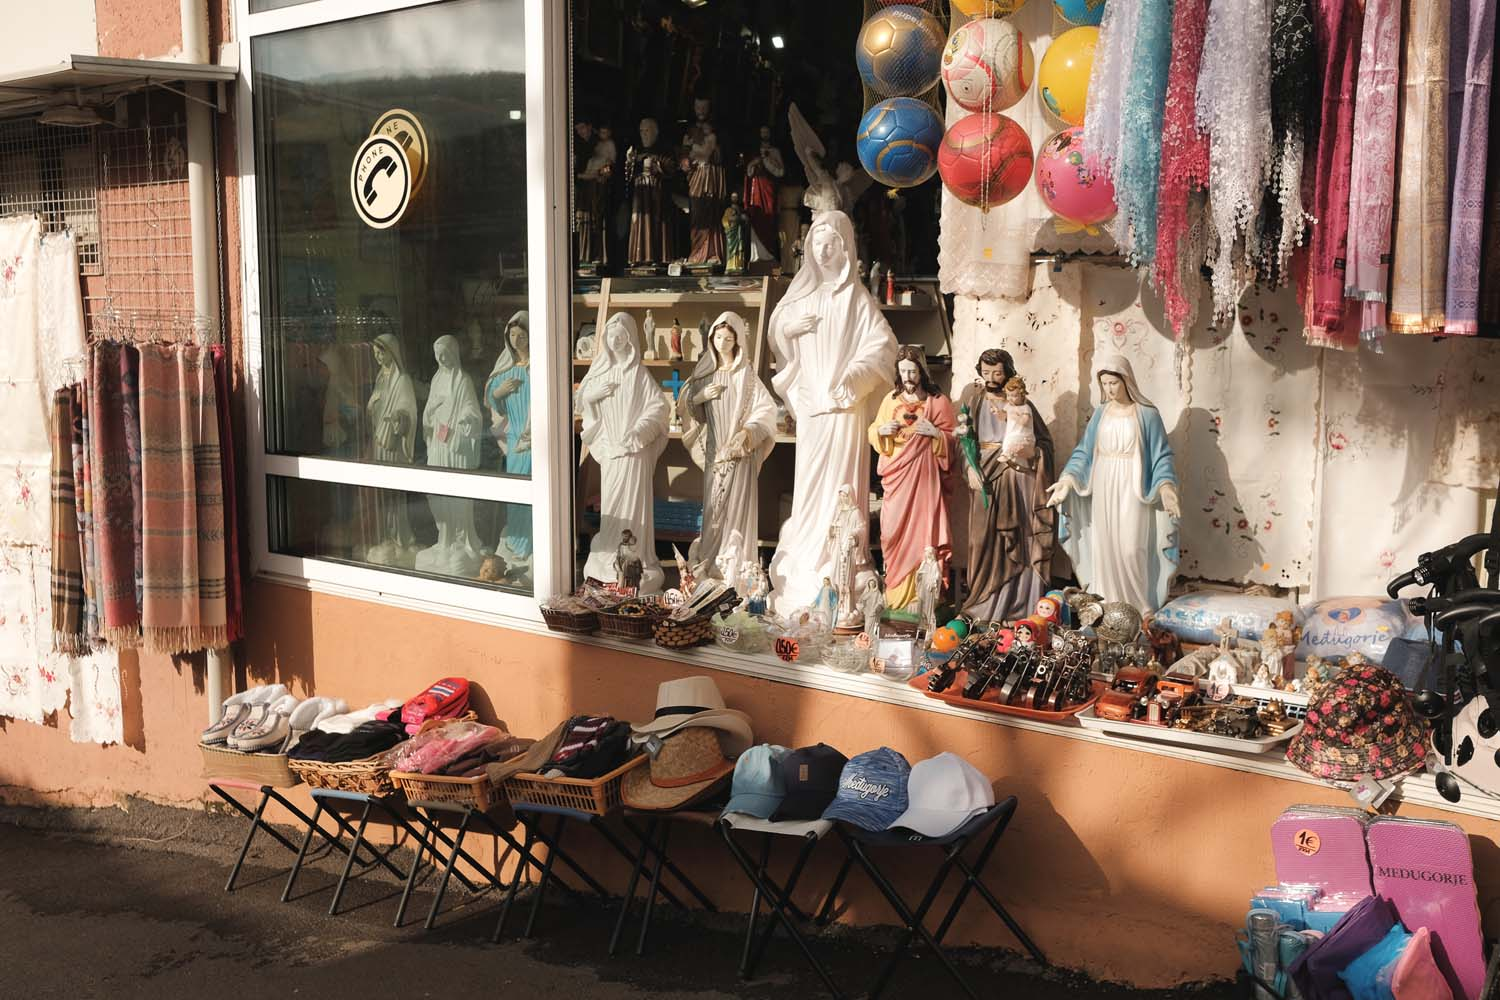 A store selling religious souvenirs and icons. November 2019.